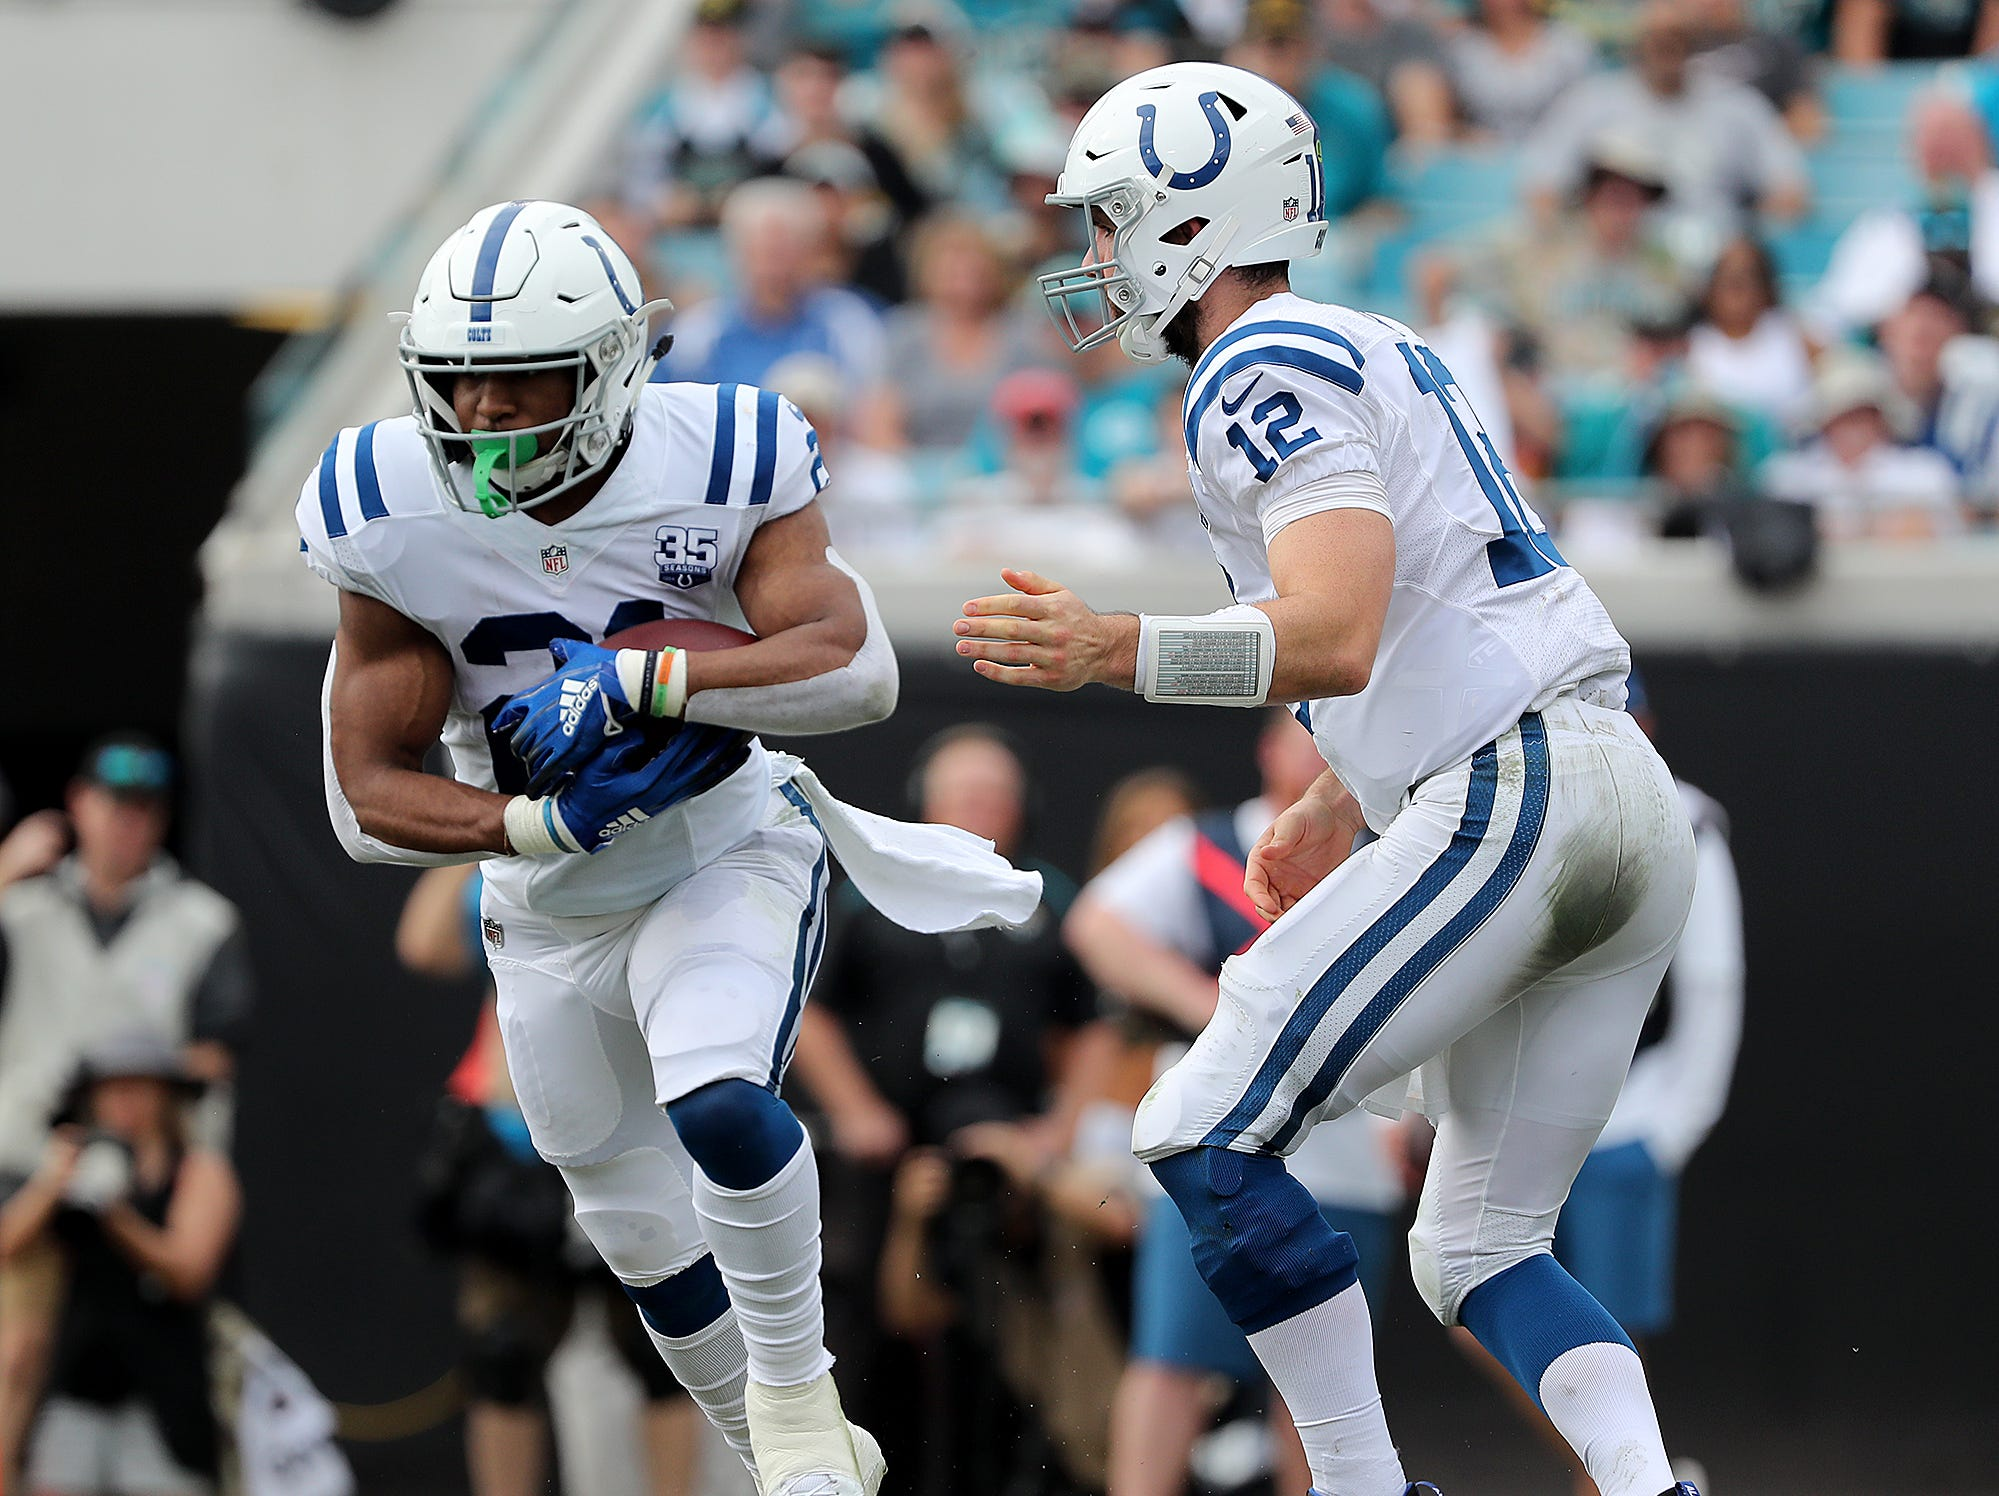 Indianapolis Colts quarterback Andrew Luck (12) hands the ball off to running back Nyheim Hines (21) in the second quarter of their game at TIAA Bank Field on Thursday, Dec. 2, 2018.